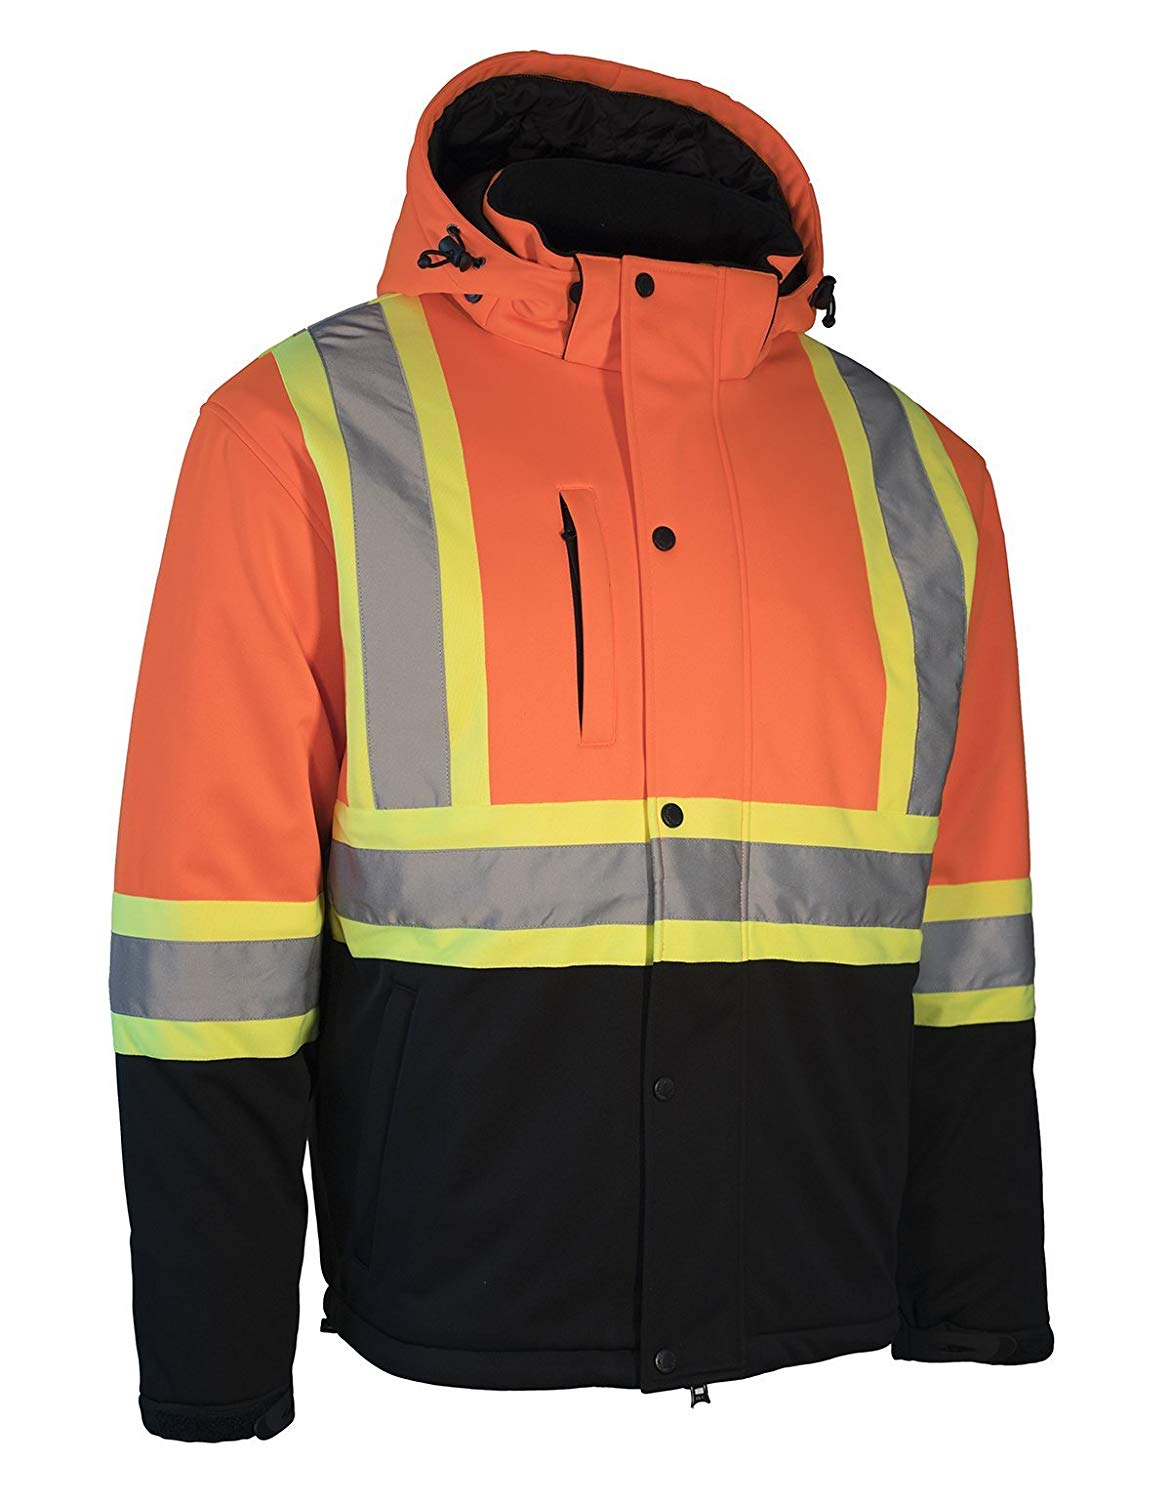 Forcefield Hi-Vis Re-Engineered Safety Softshell 023-EN149OR